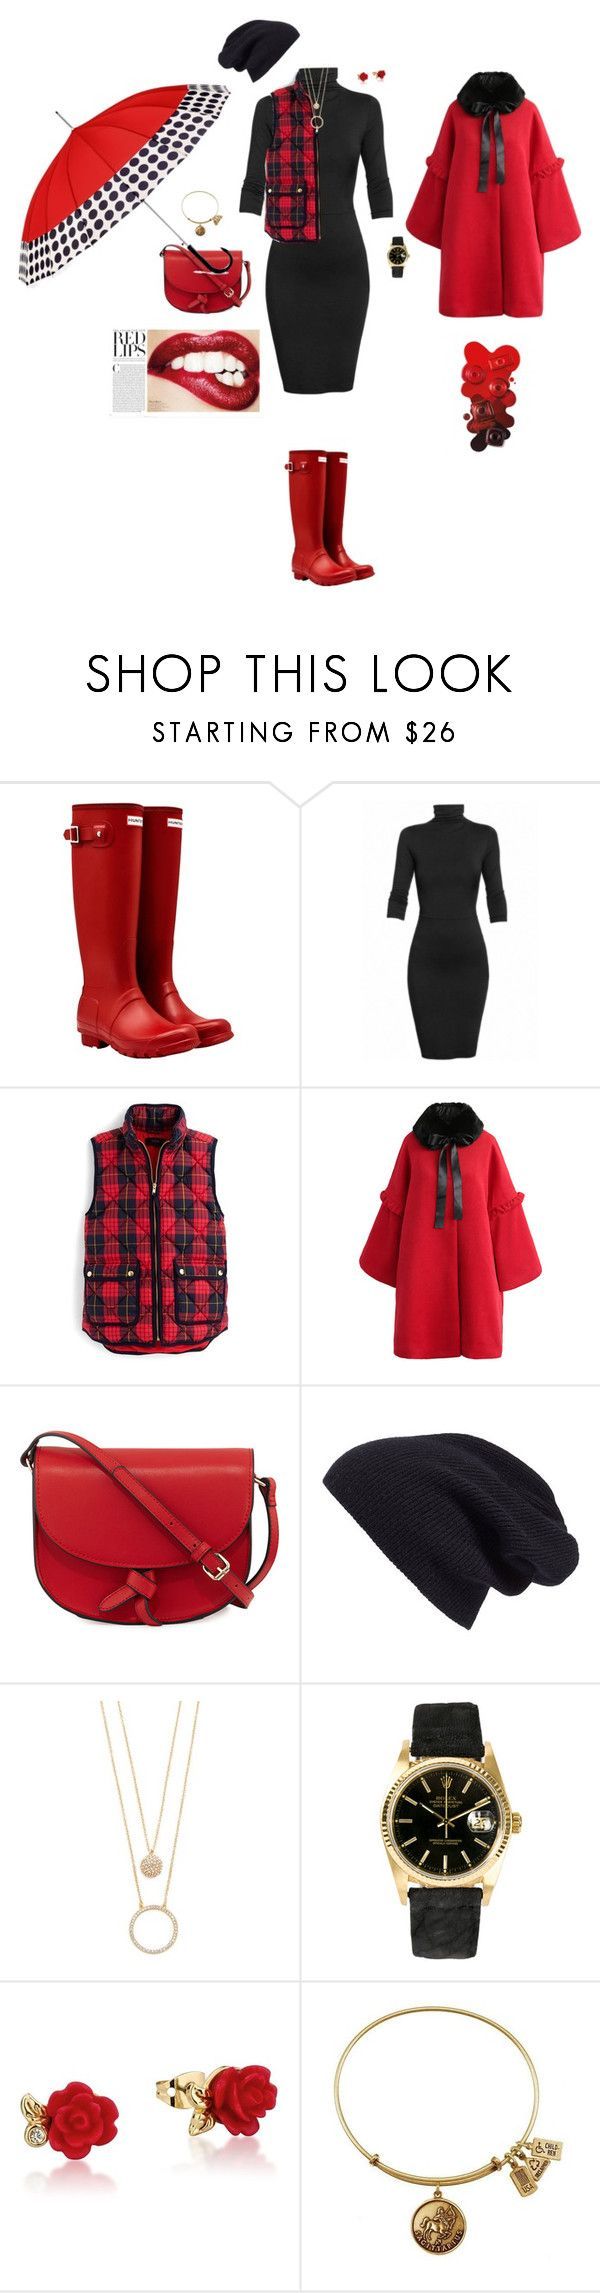 """""""Untitled #8791"""" by erinlindsay83 ❤ liked on Polyvore featuring Hunter, Undress, J.Crew, Chicwish, KC Jagger, Halogen, Kate Spade, Rolex, Disney and ShedRain"""